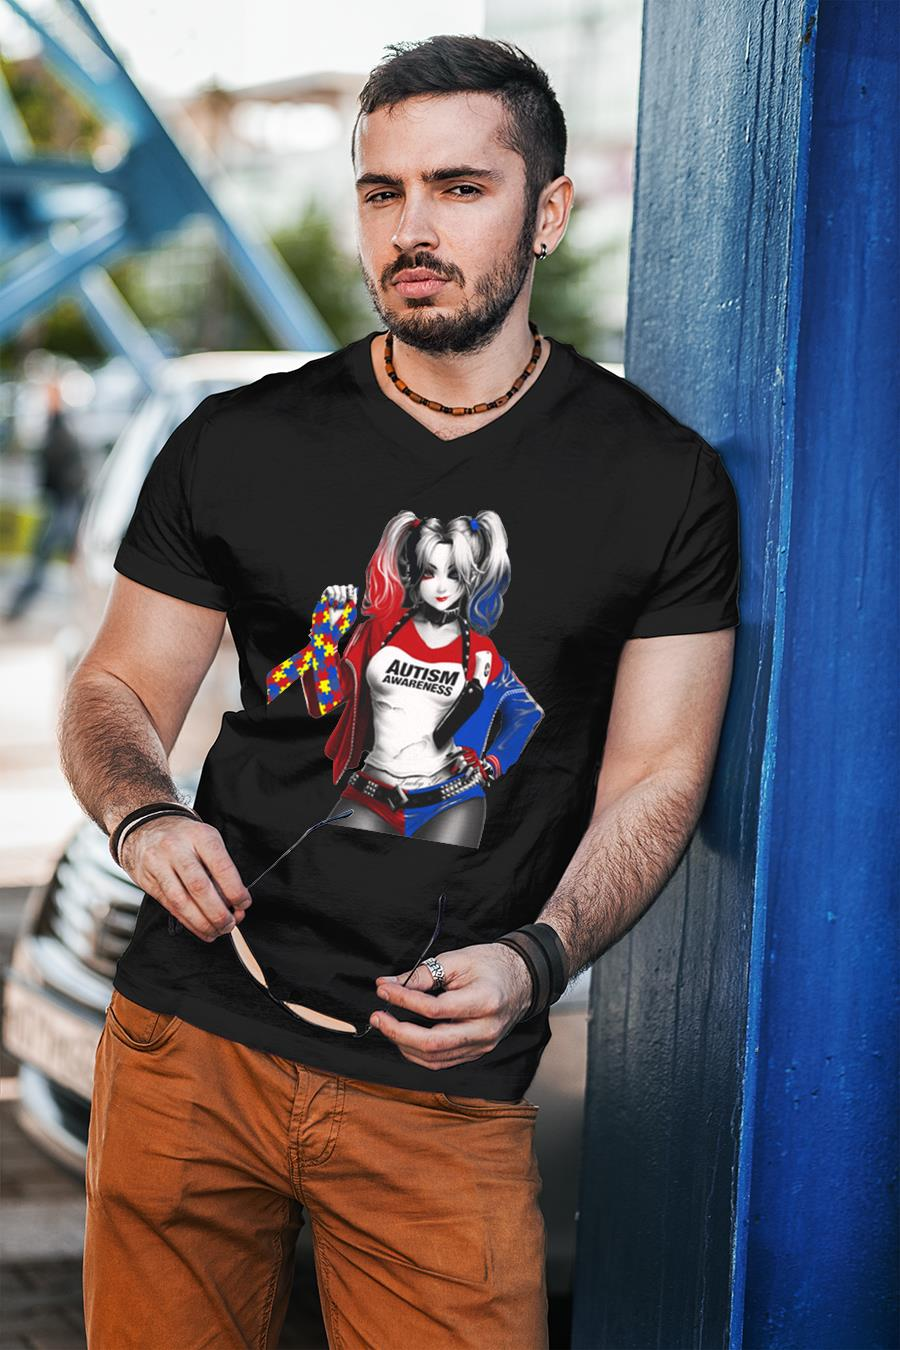 Harley quinn autism awareness shirt unisex